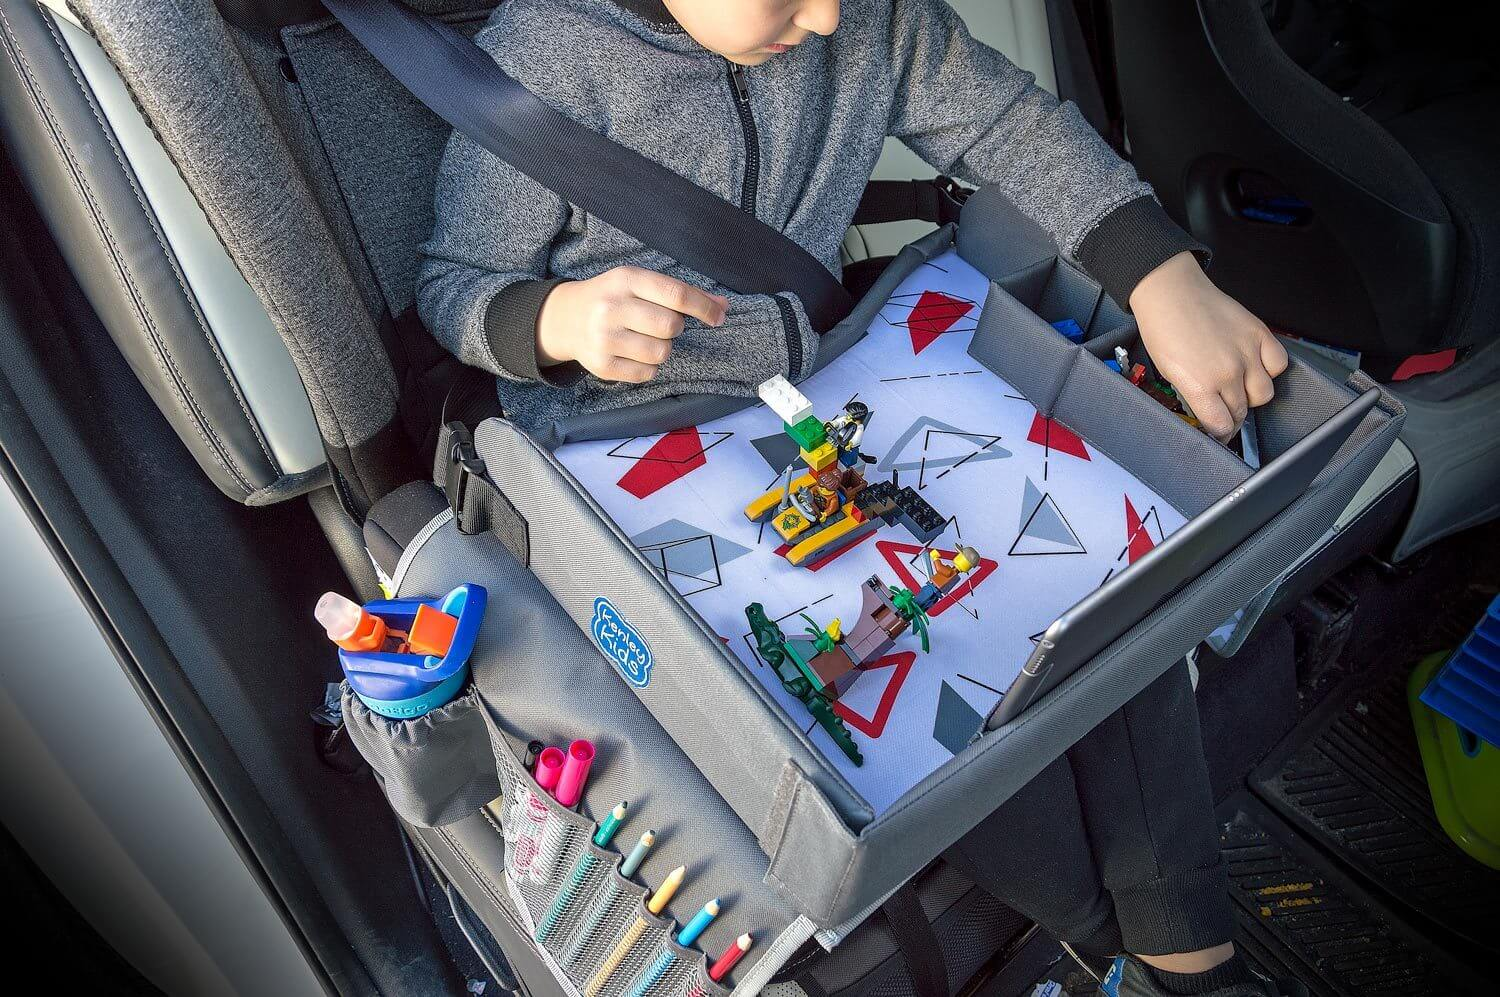 Travel lap tray for kids in car